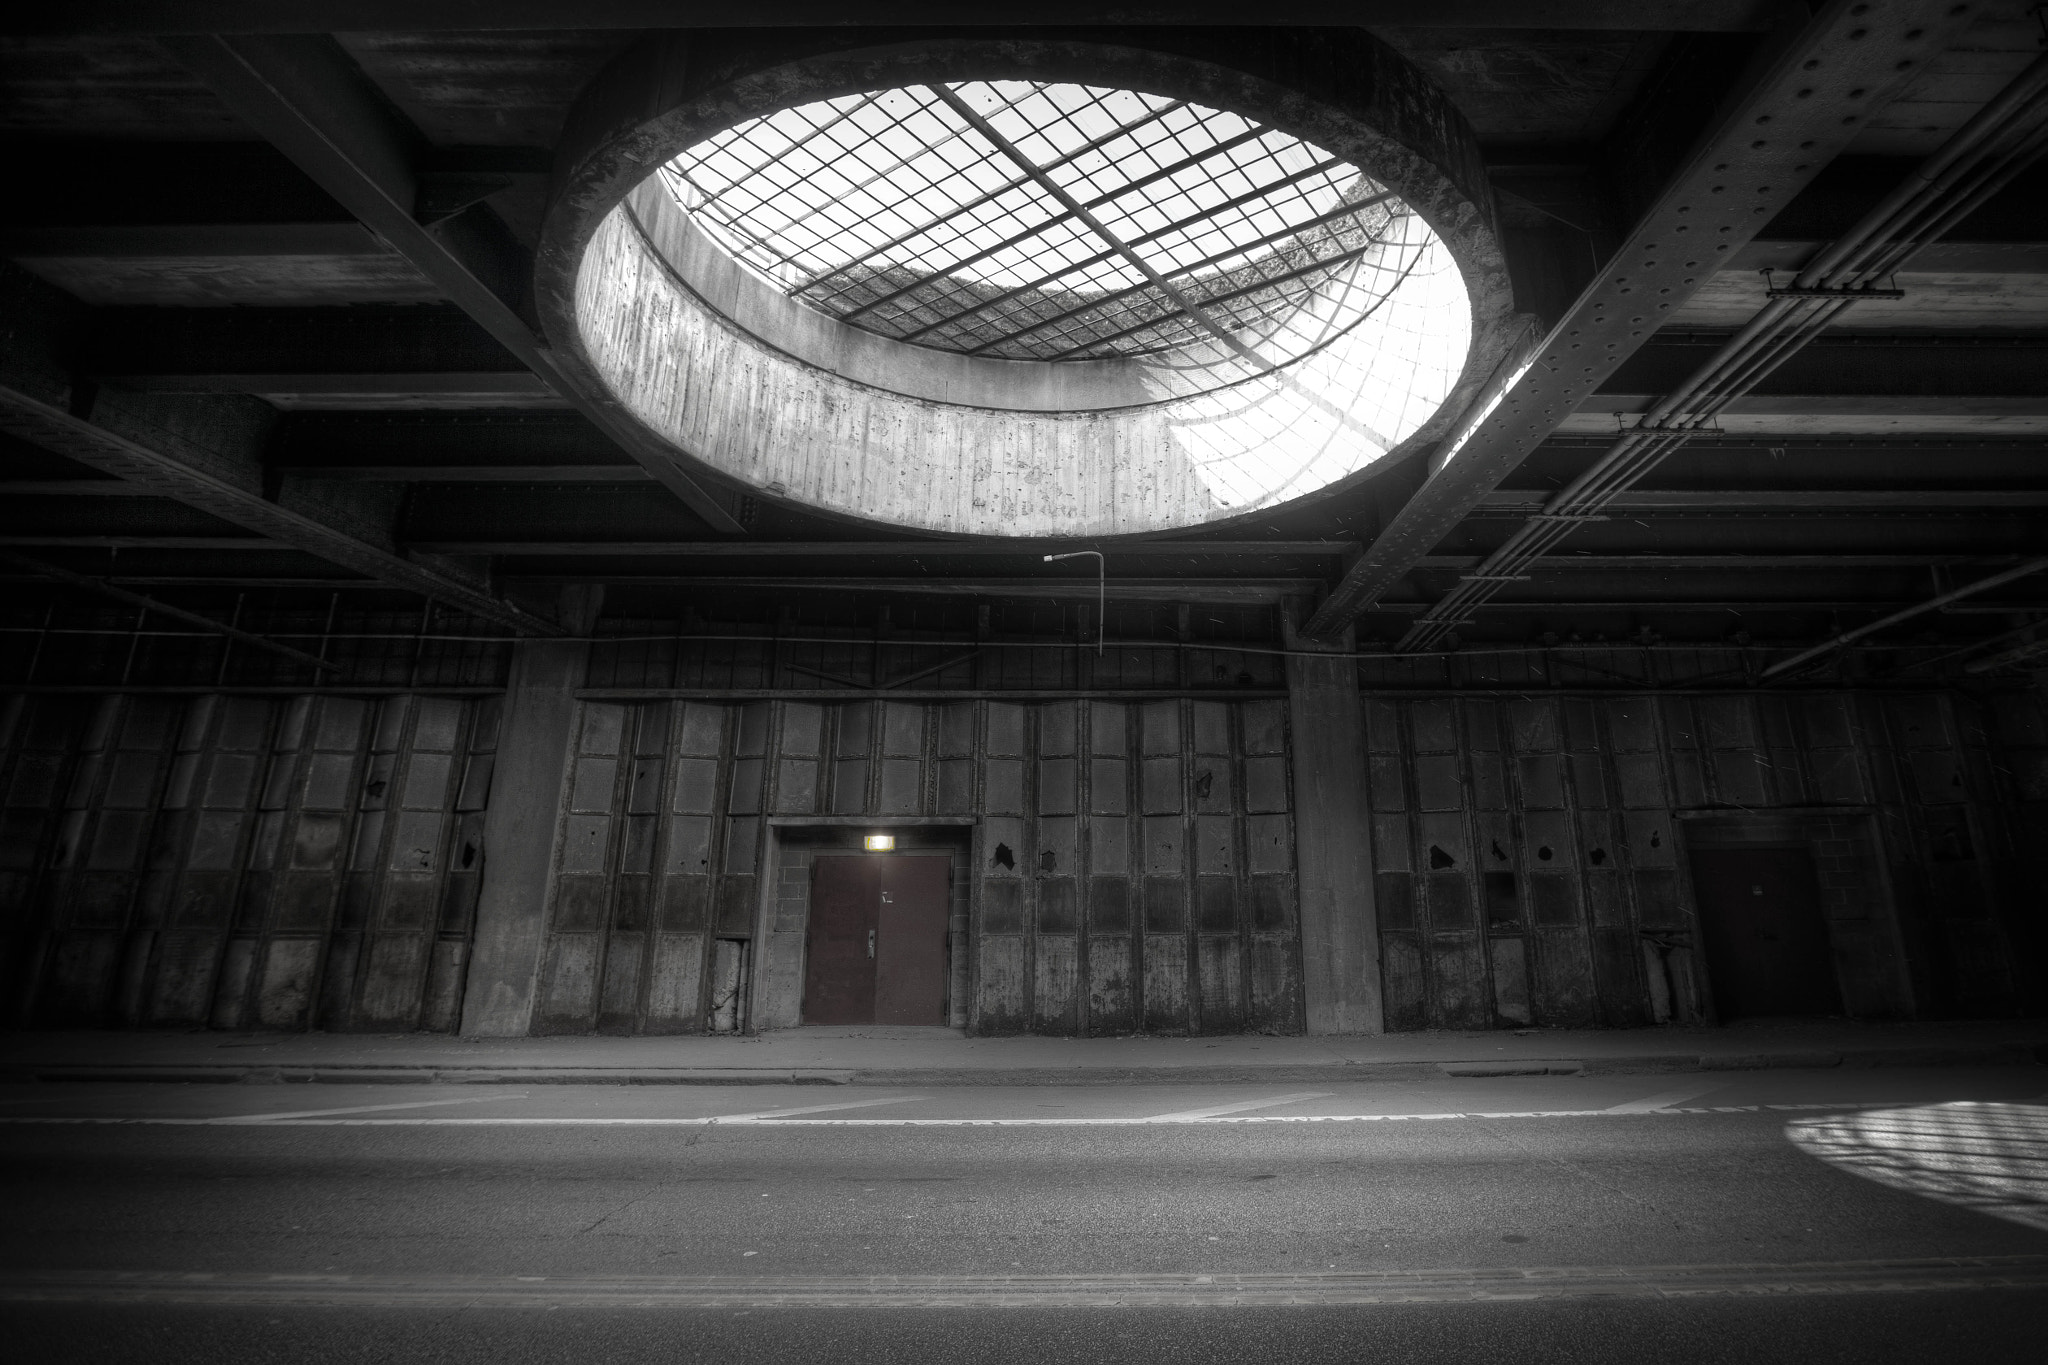 Photograph Union Terminal Underbelly by Nick Dewald on 500px